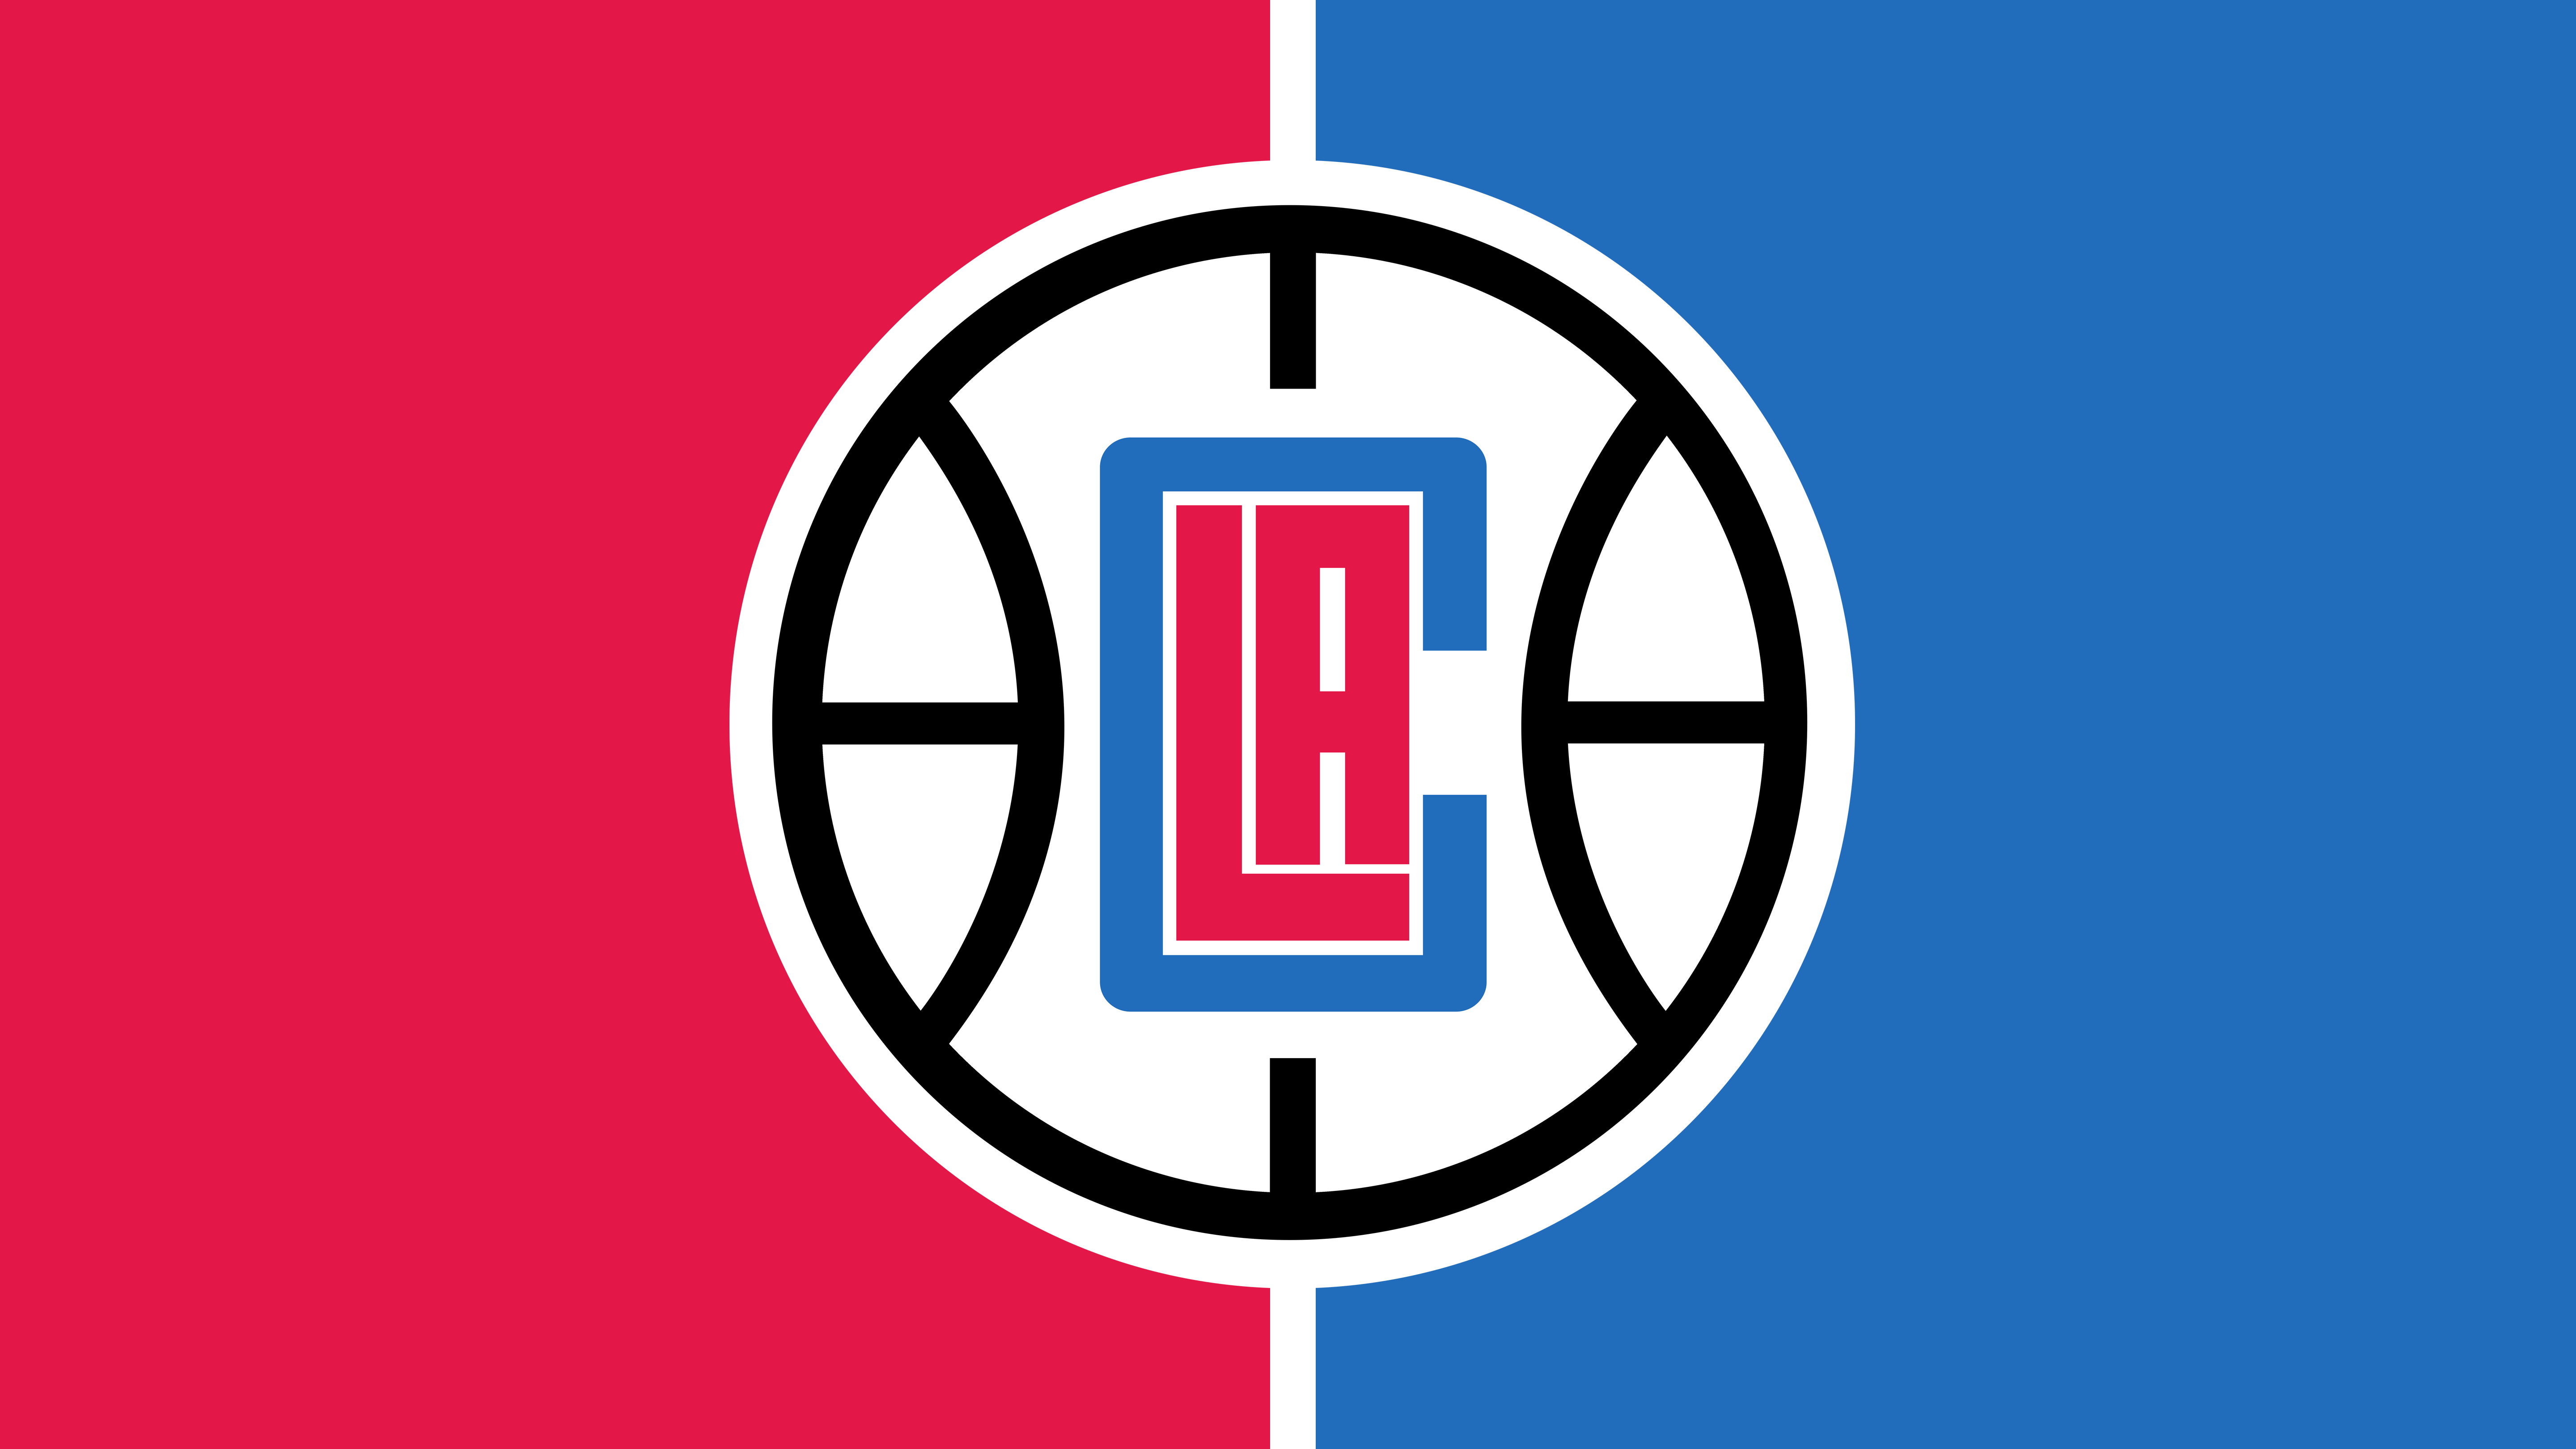 clippers background by lukemphotography on deviantart